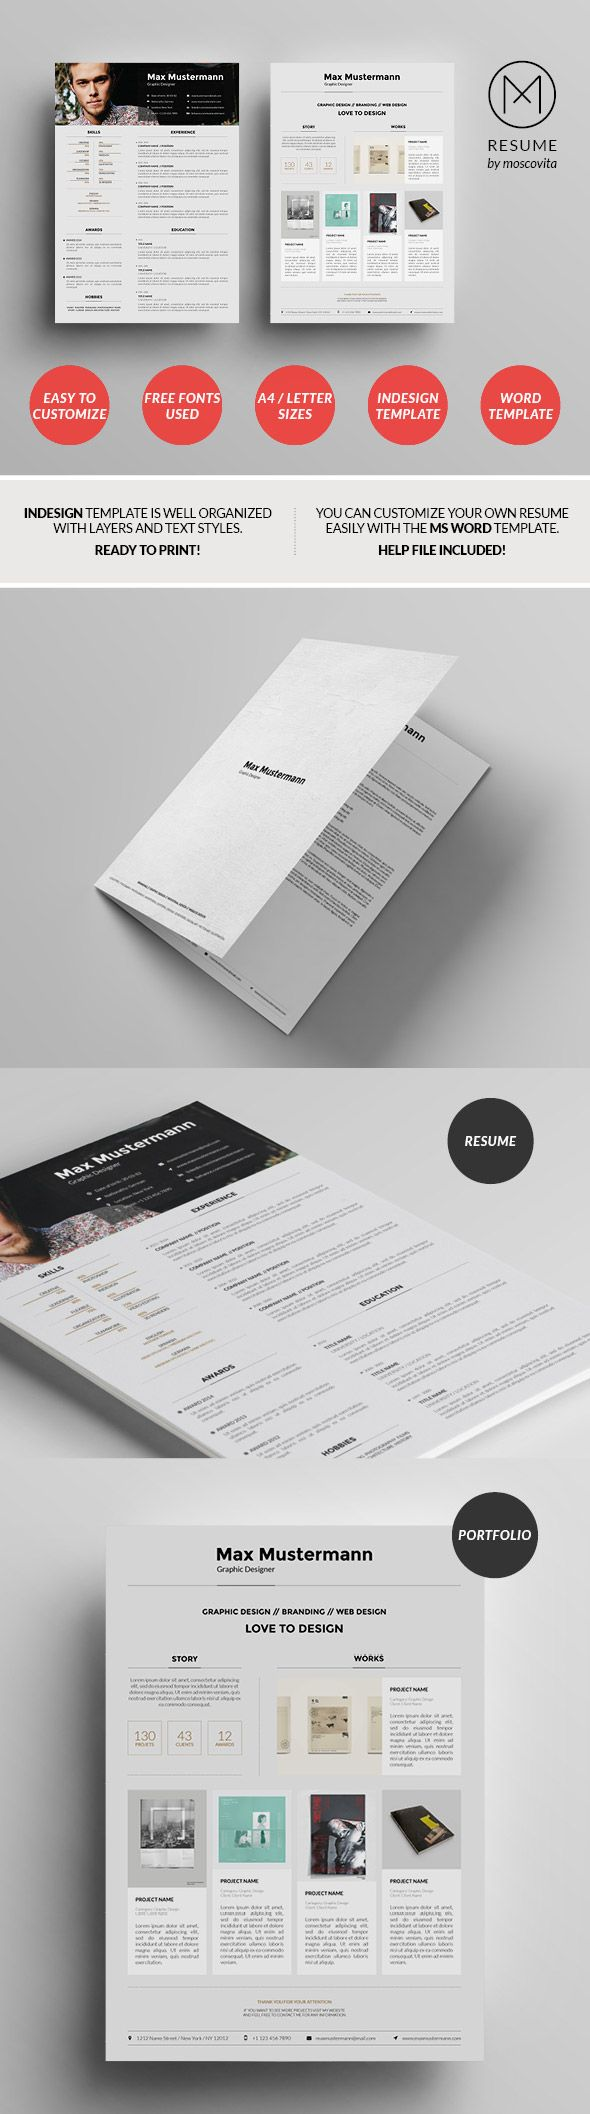 unique resumes templates free 9 Creative Resume